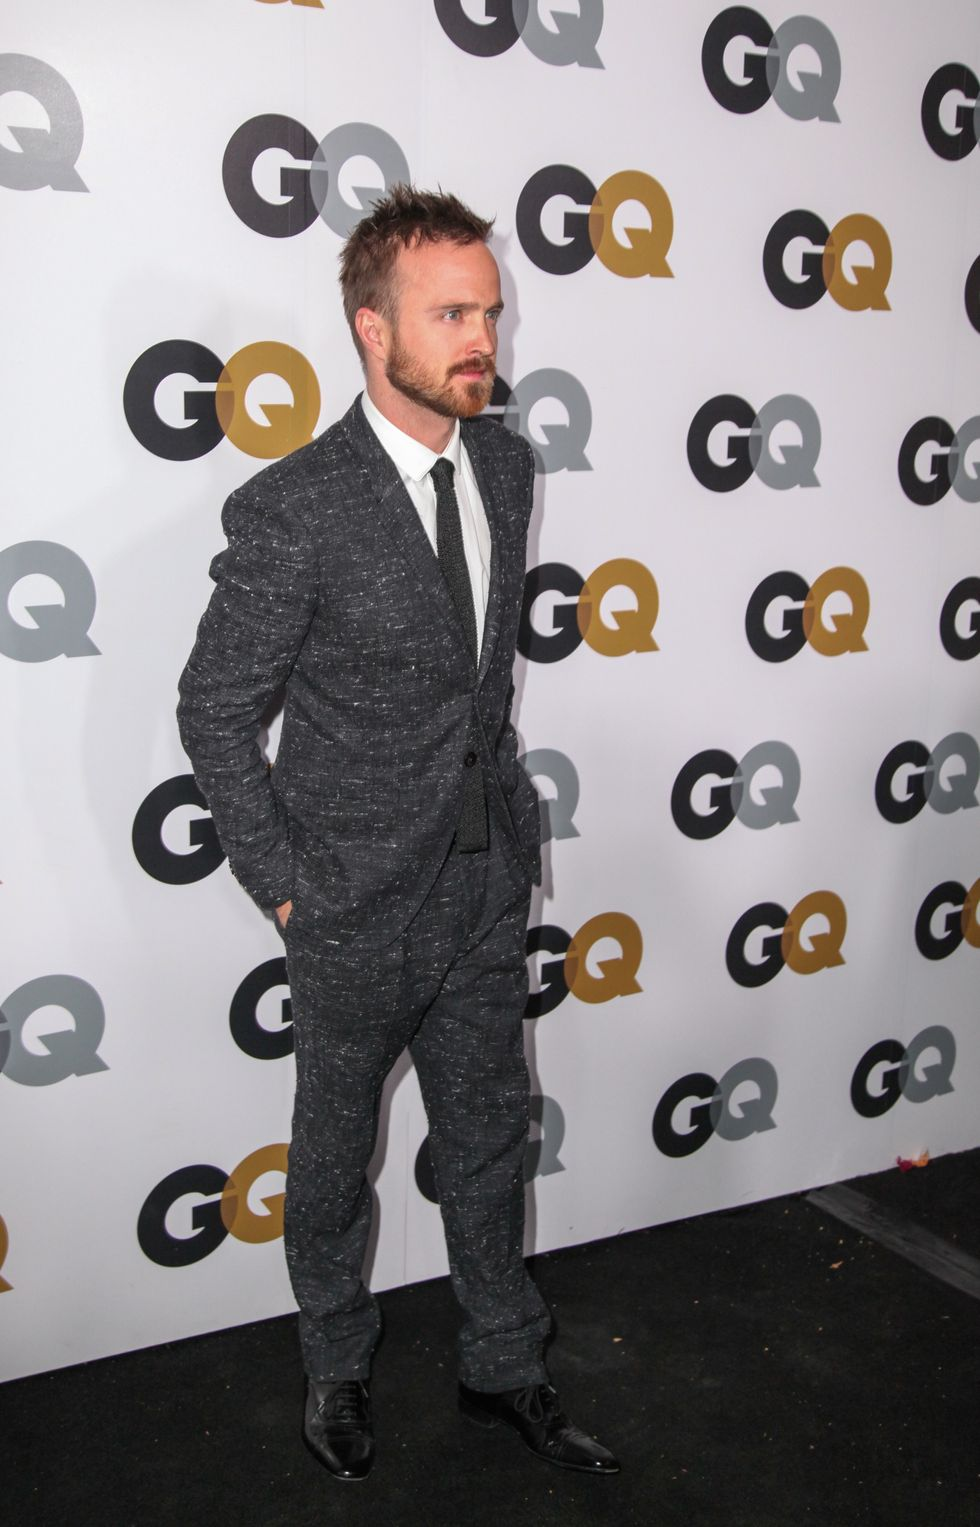 He Said, She Said: Rating the Fashion at GQ's Men of the Year Party